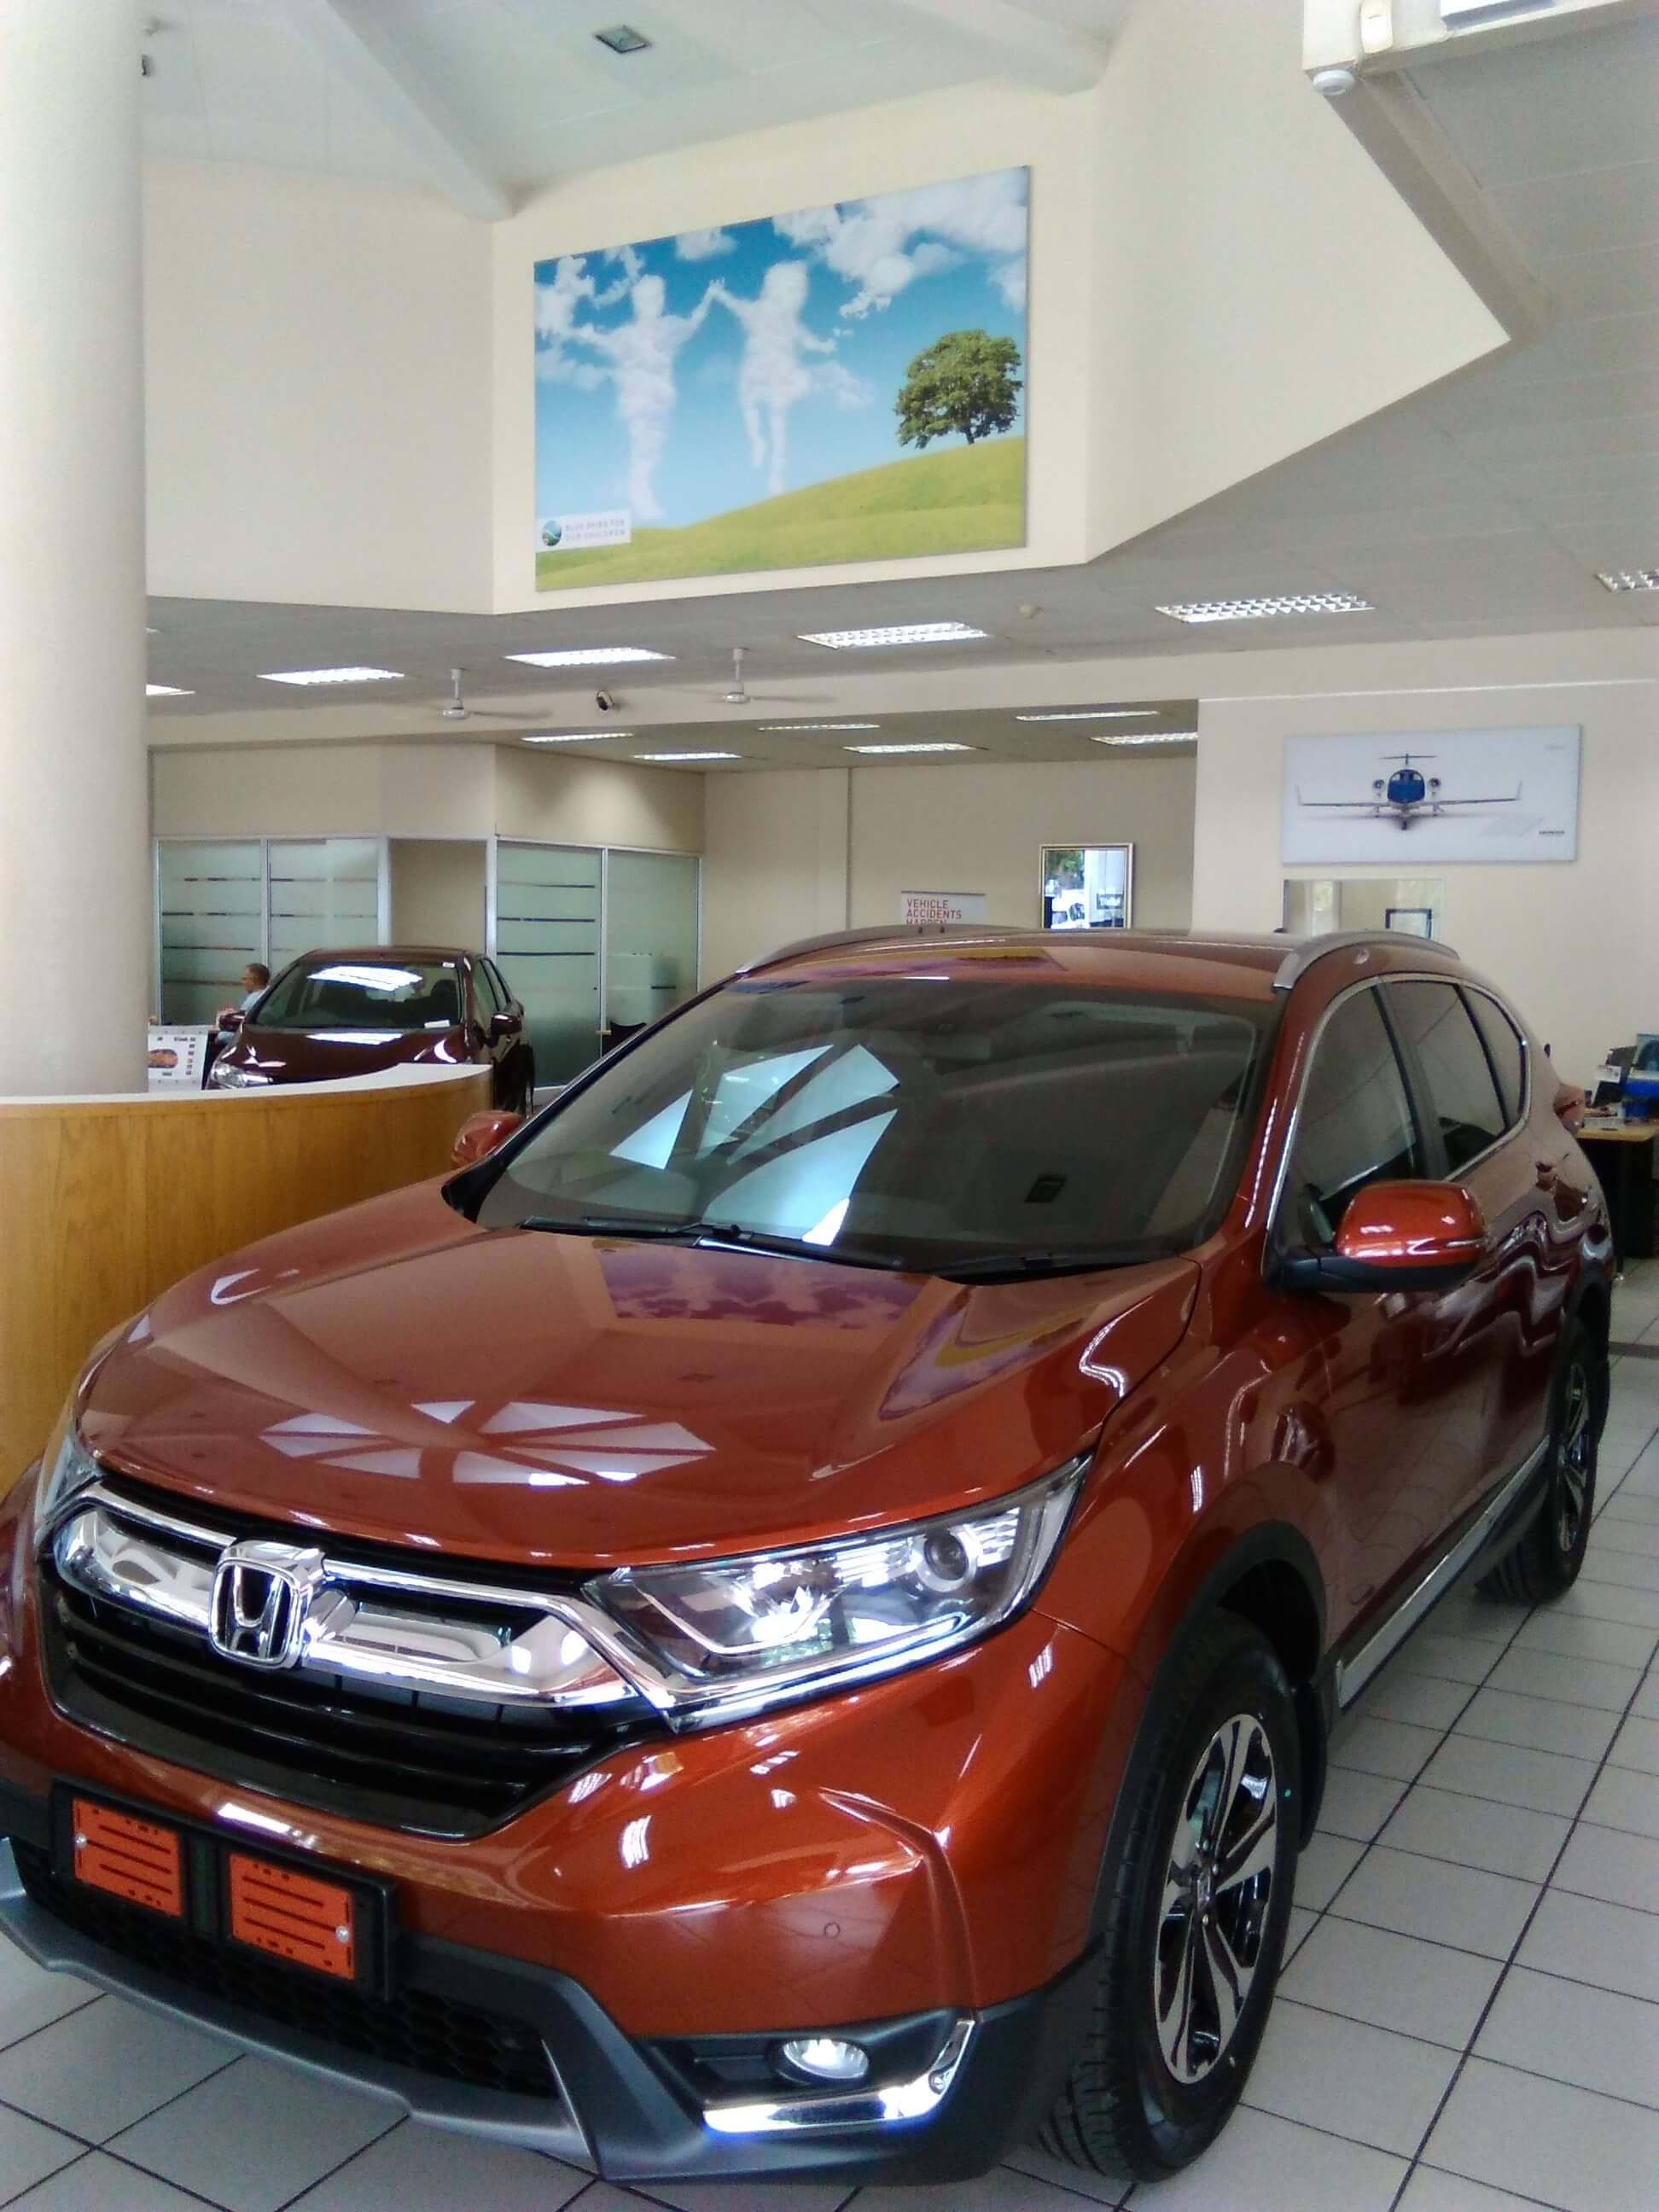 hondas interior htm dealers pa buy at and conshohocken new honda from in store dealer why used car dealership conicelli